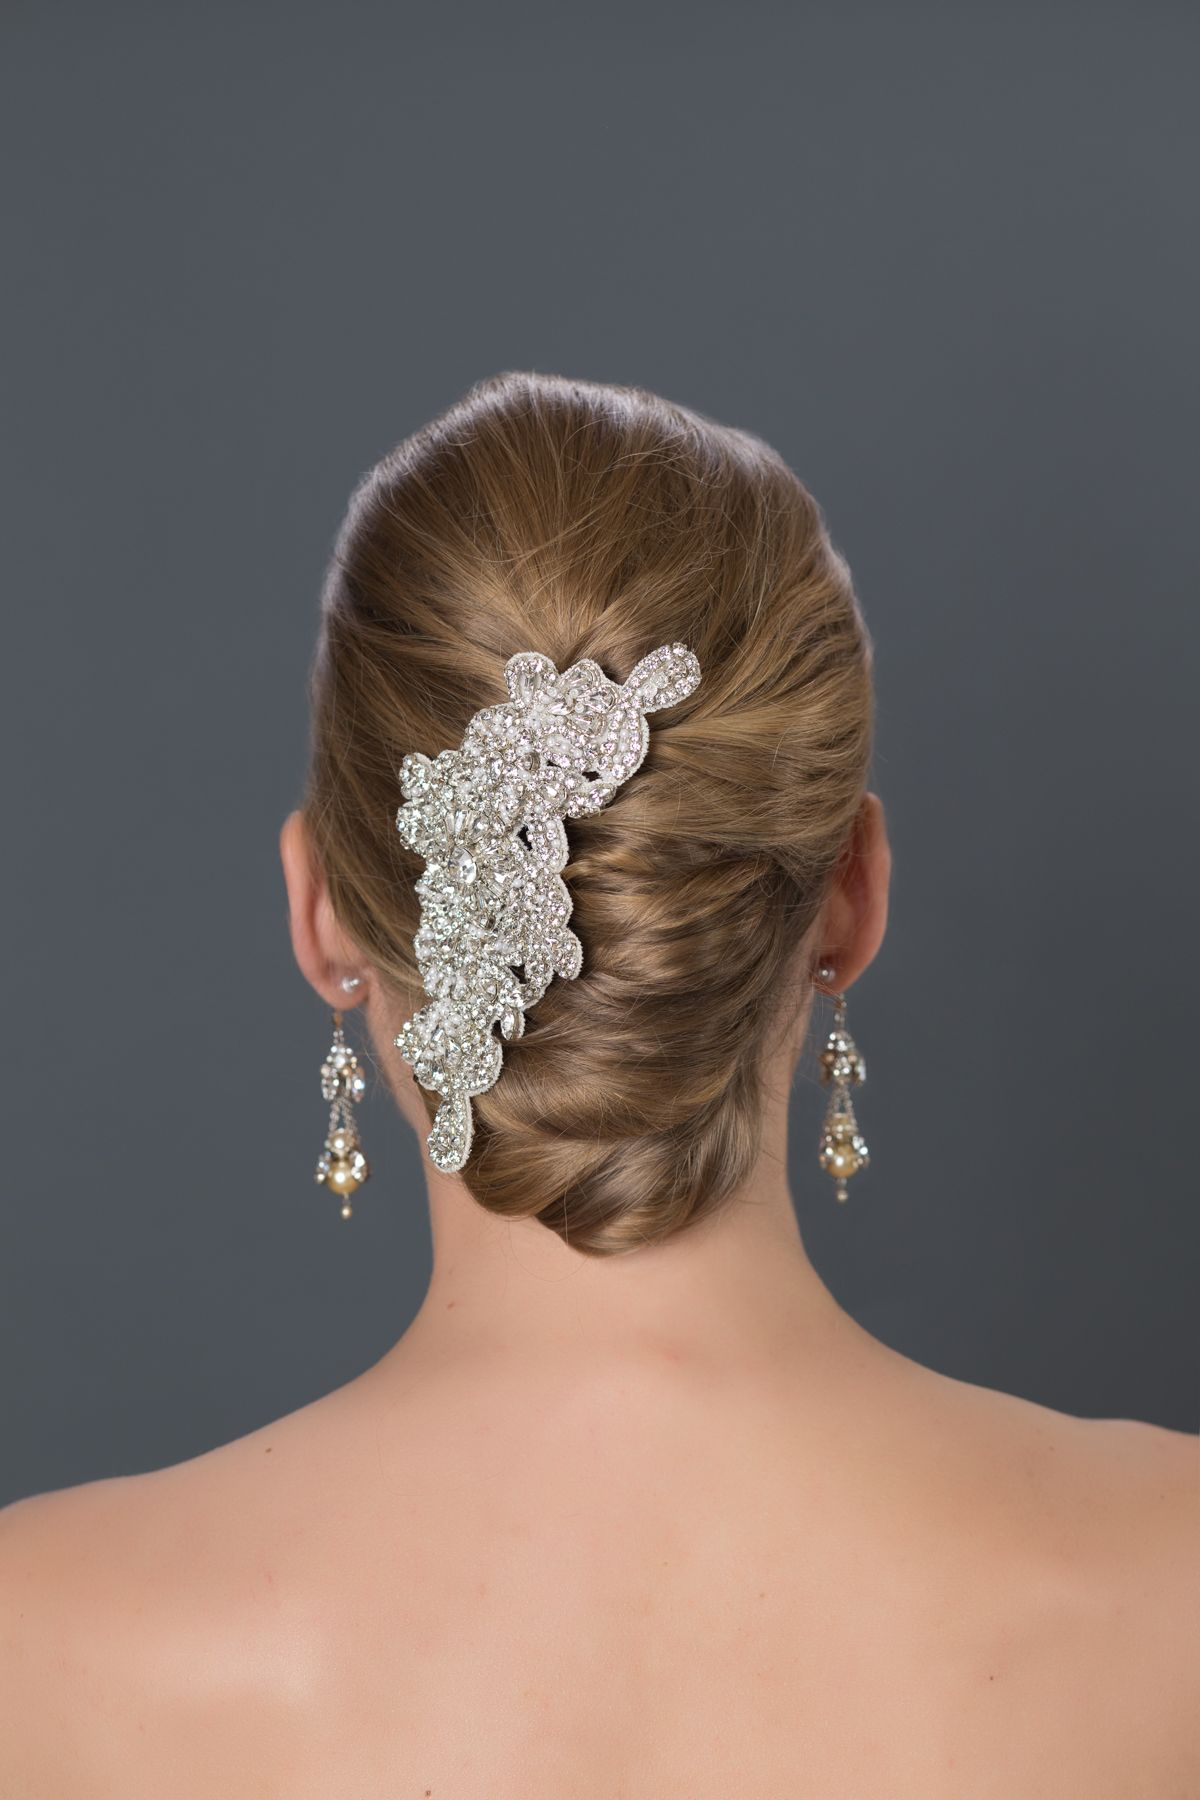 Watch Now You Can Have Amazing Wedding Hair: Updo Hairstyle Ideas – Part 1 video